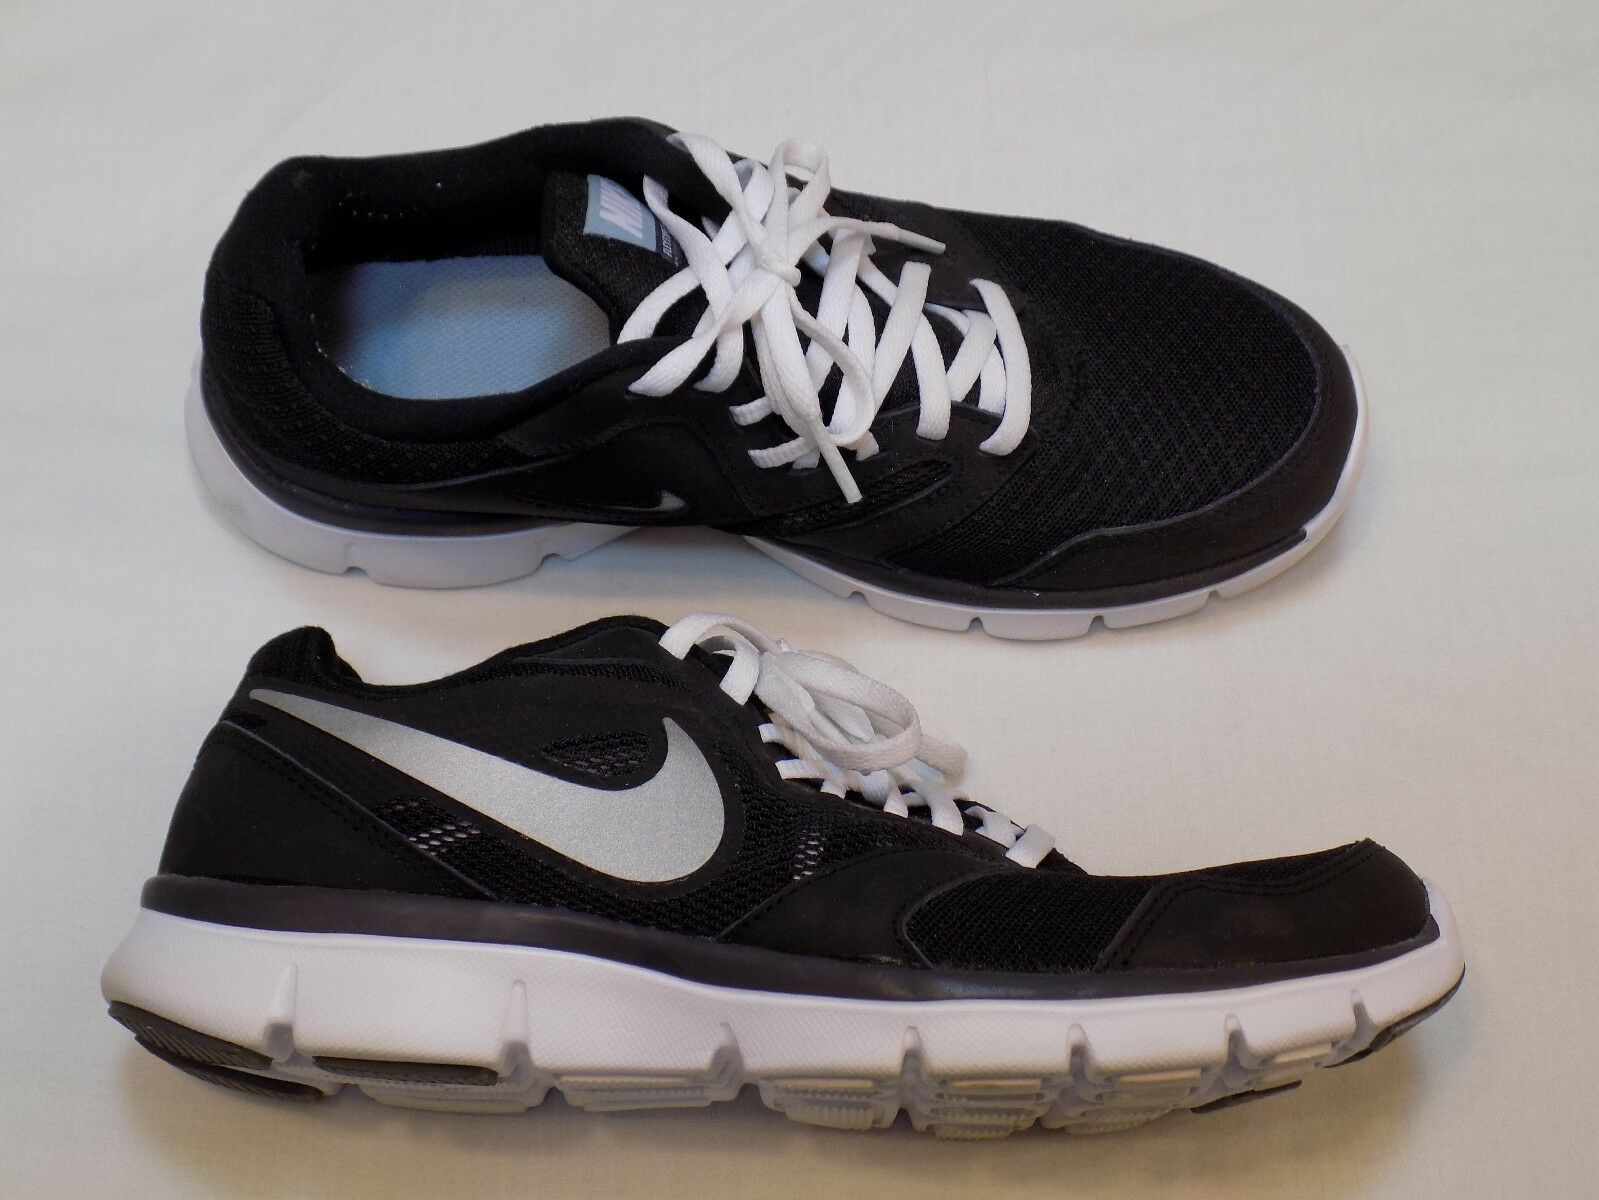 8.5 Nike Flex Experience 3 Womens Running Shoes Black White Athletic 652853-008 Seasonal clearance sale